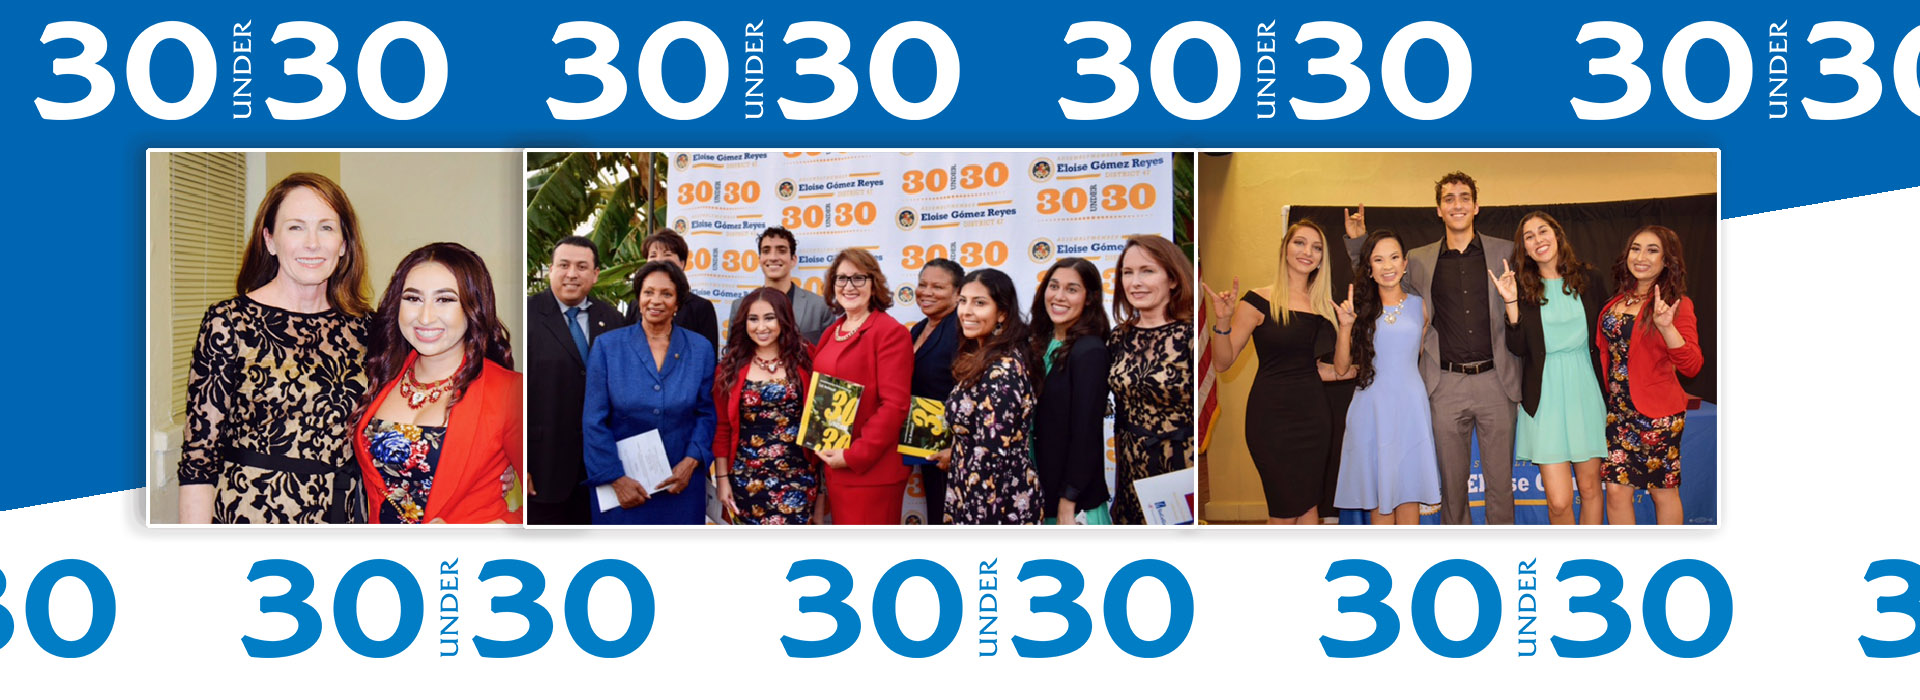 Twelve CSUSB students and alumni honored at 30 Under 30 Award Ceremony and Art Showcase